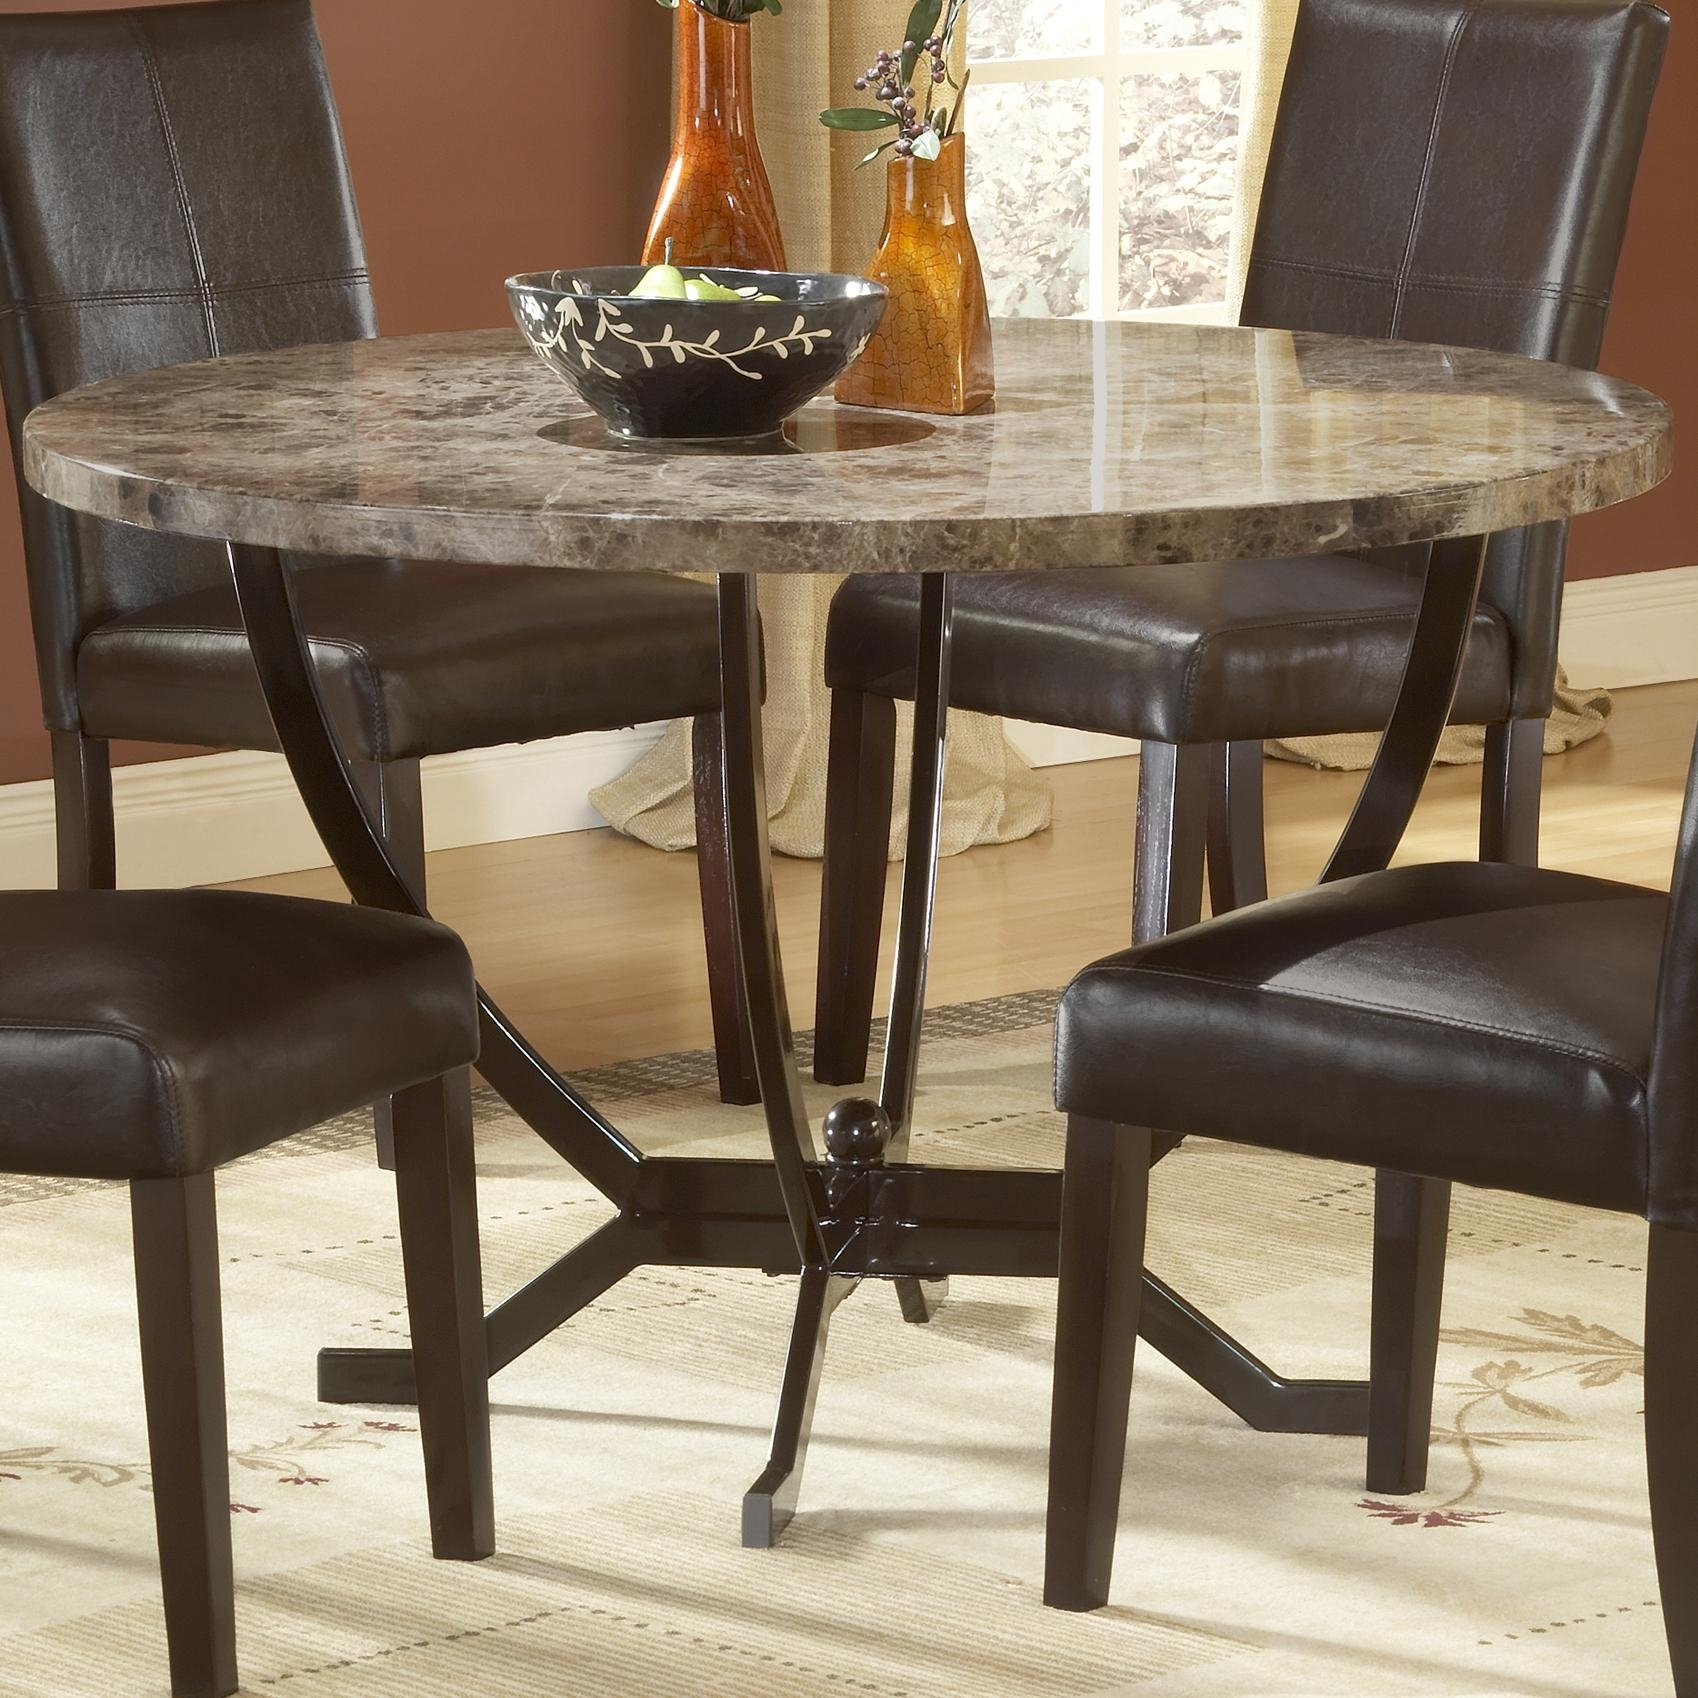 Hillsdale Monaco Round Dining Table | Lindy's Furniture Company With Regard To Most Recently Released Lindy Espresso Rectangle Dining Tables (Image 7 of 20)